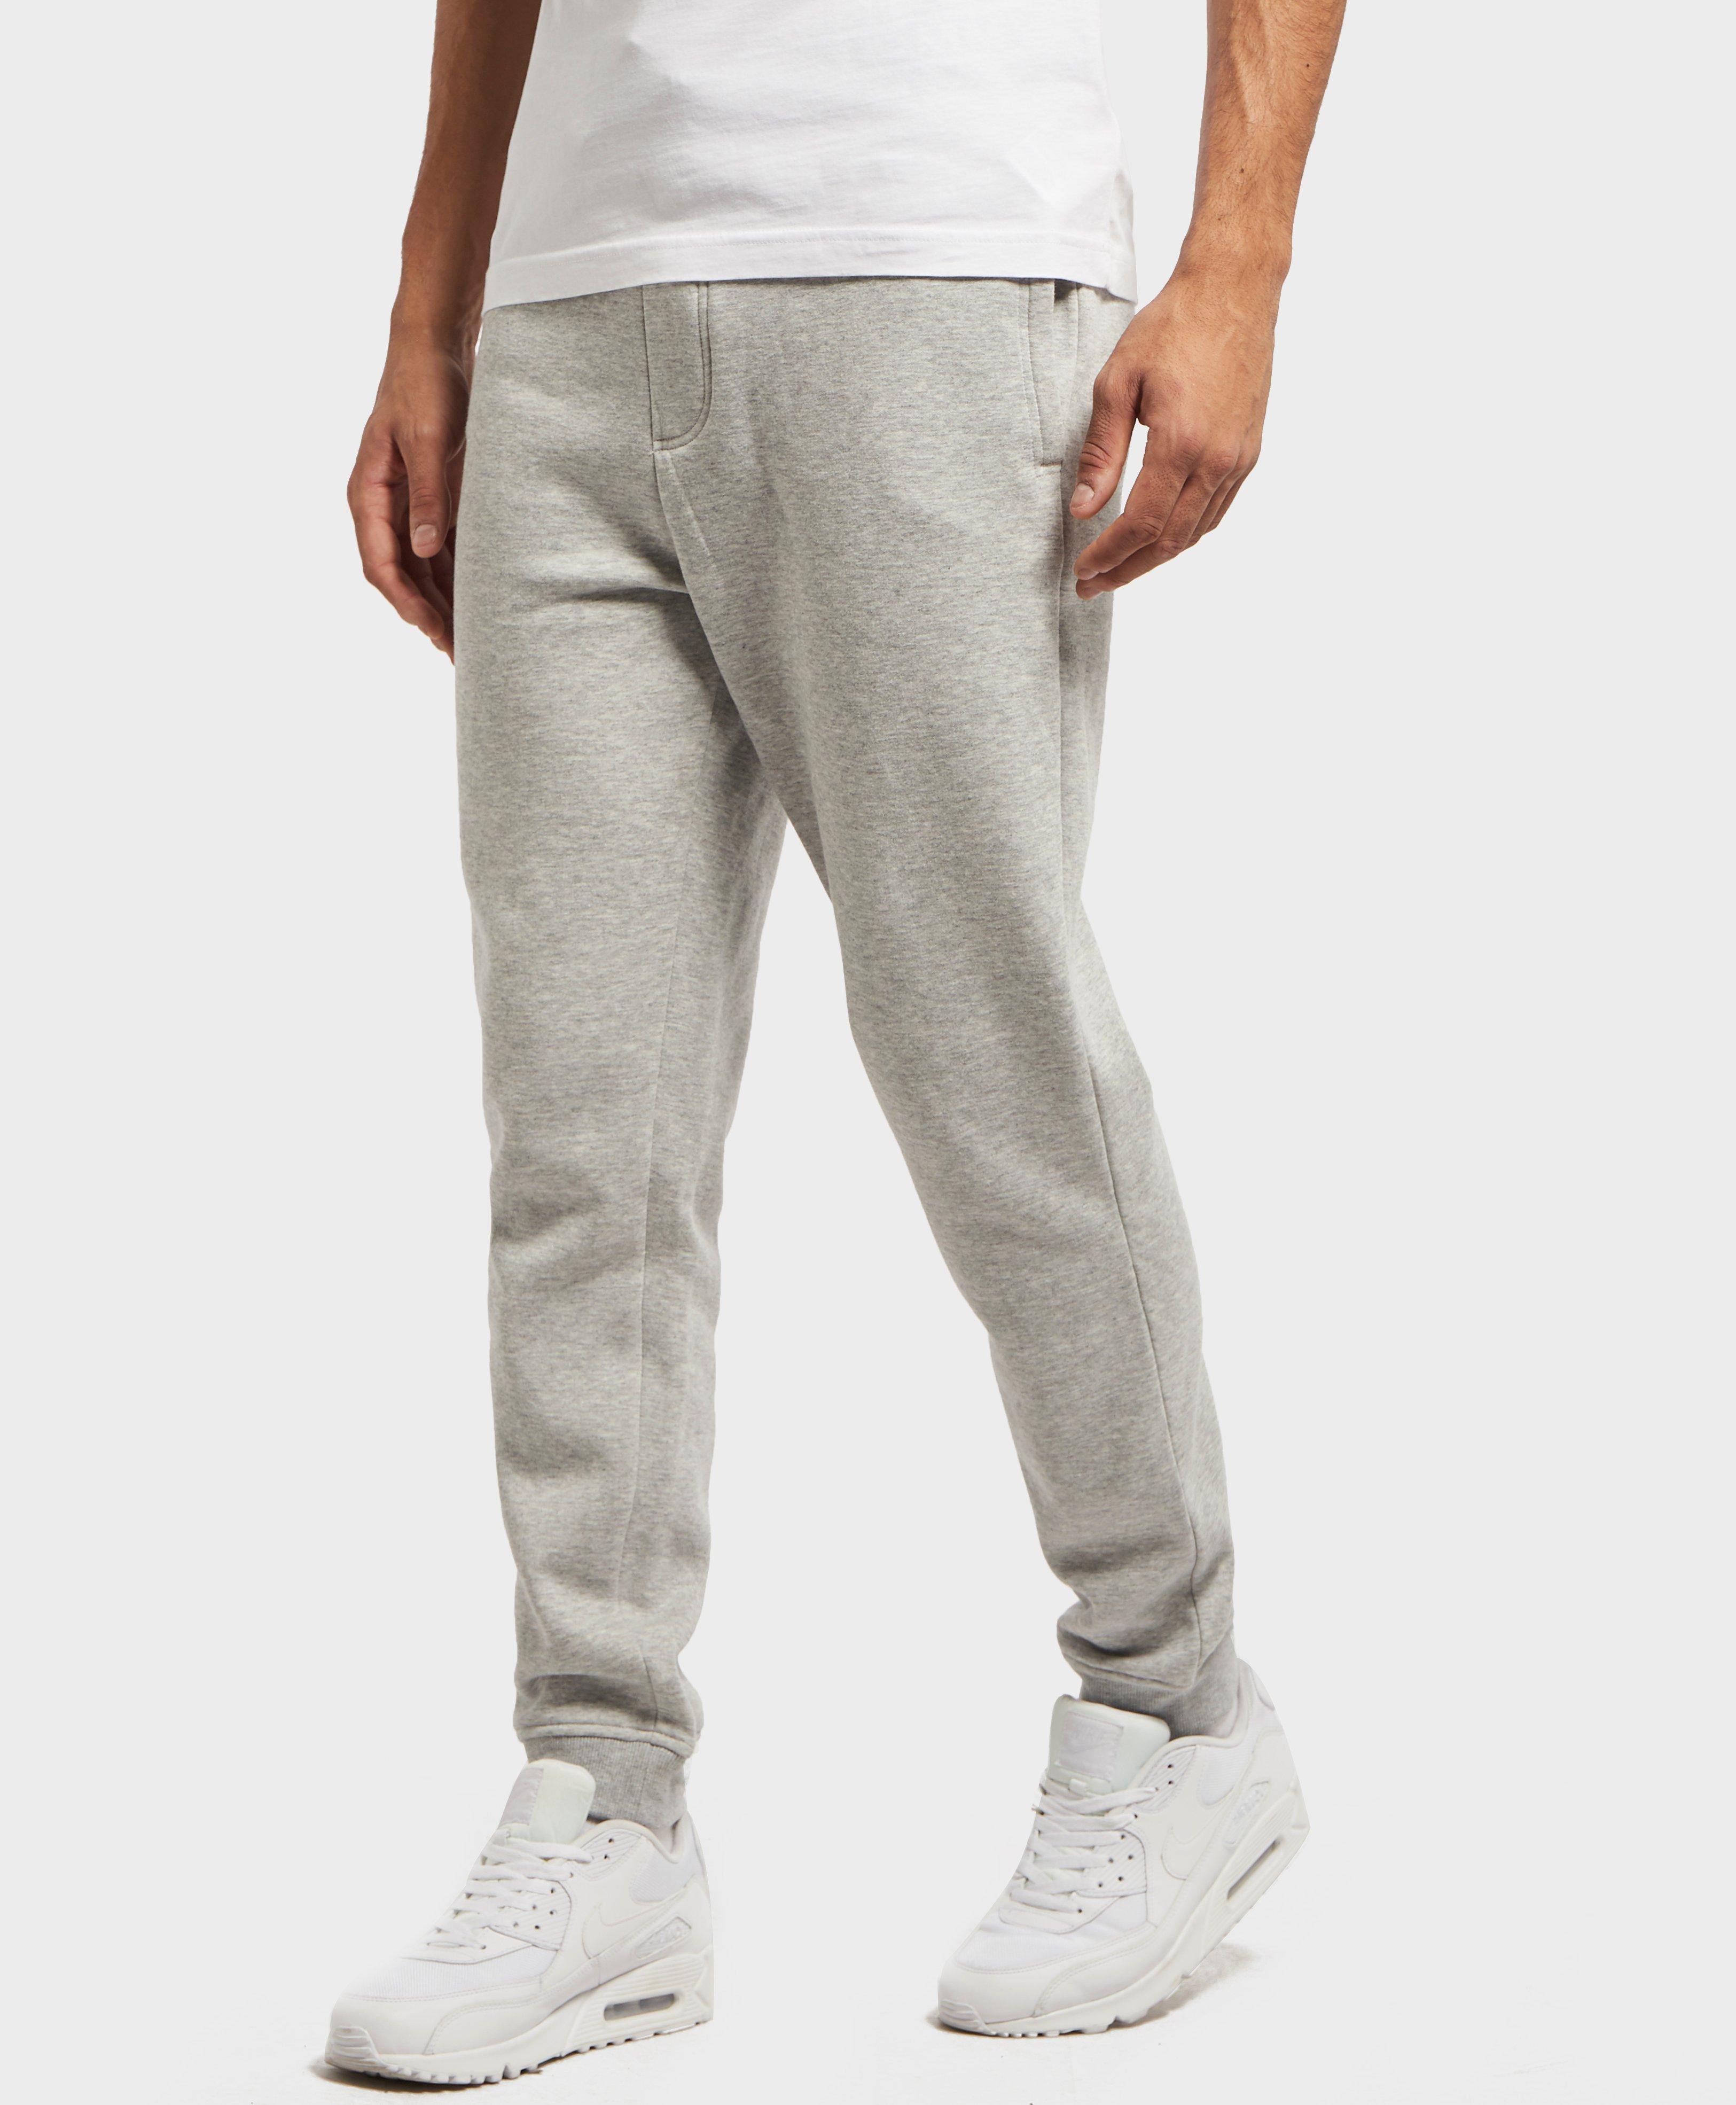 4d465dc8 Lyst - Tommy Hilfiger Tape Waistband Cuffed Fleece Pants in Gray for Men